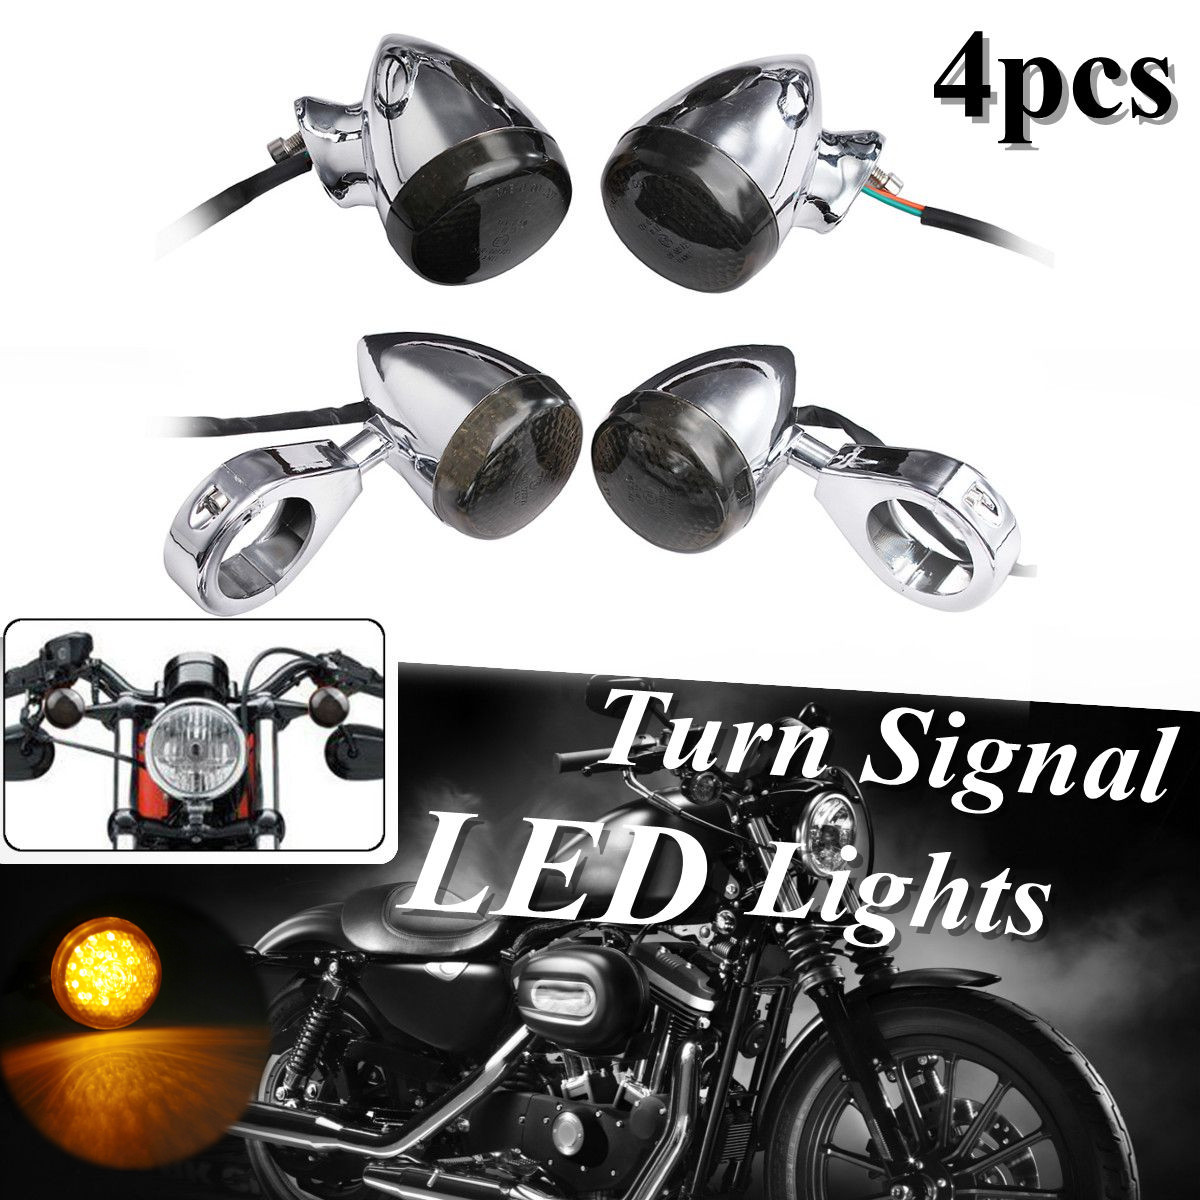 4 Pcs Front Rear Motorcycle LED Turn Signal Indicator Light For Harley/Davidson Sportster/Dyna Motorbike With 39mm Fork Tube